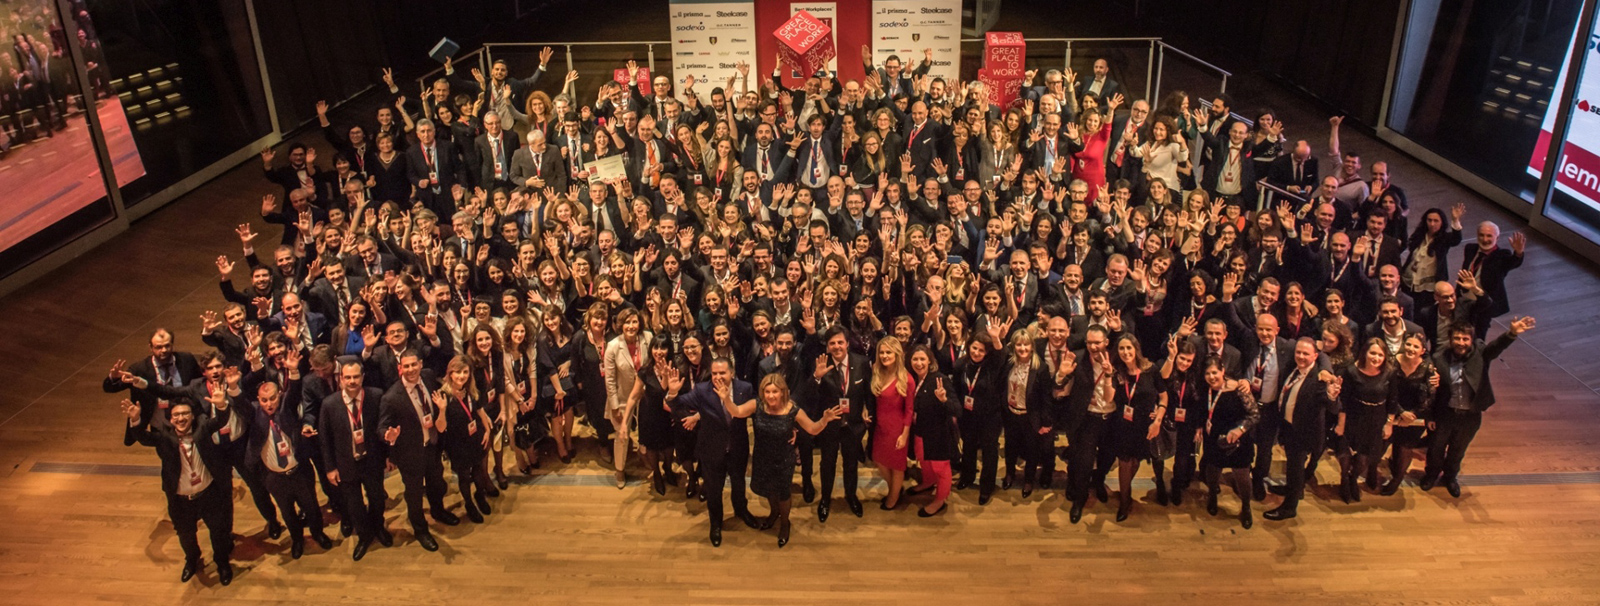 Classifica Best Workplaces™ Italia 2017 - le aziende premiate